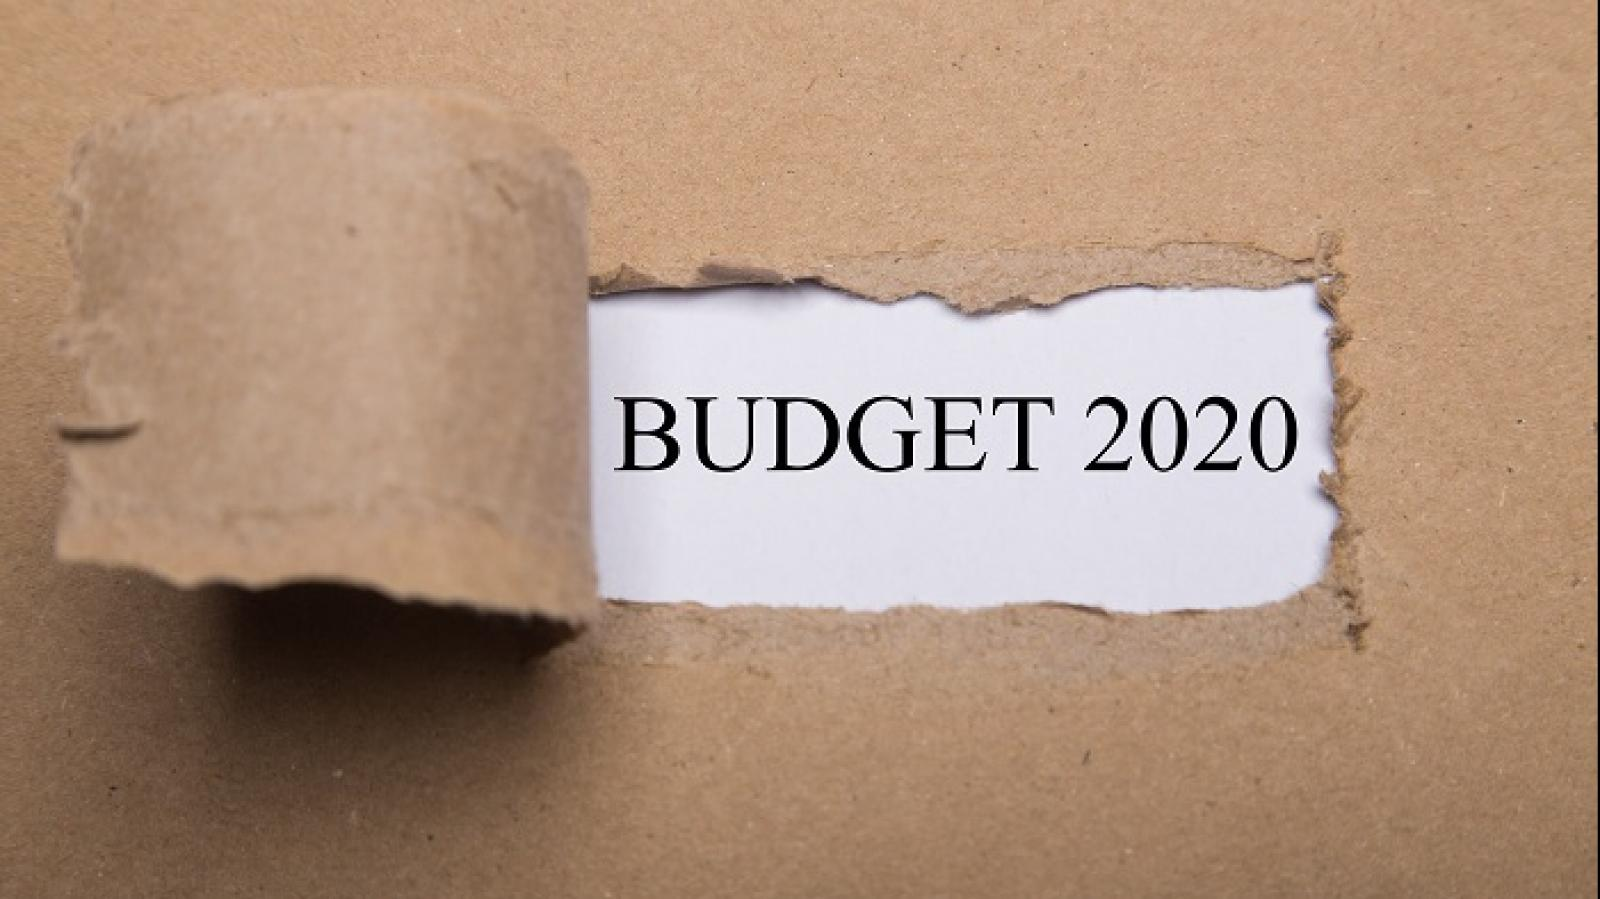 The words 'Budget 2020' are displayed in this image